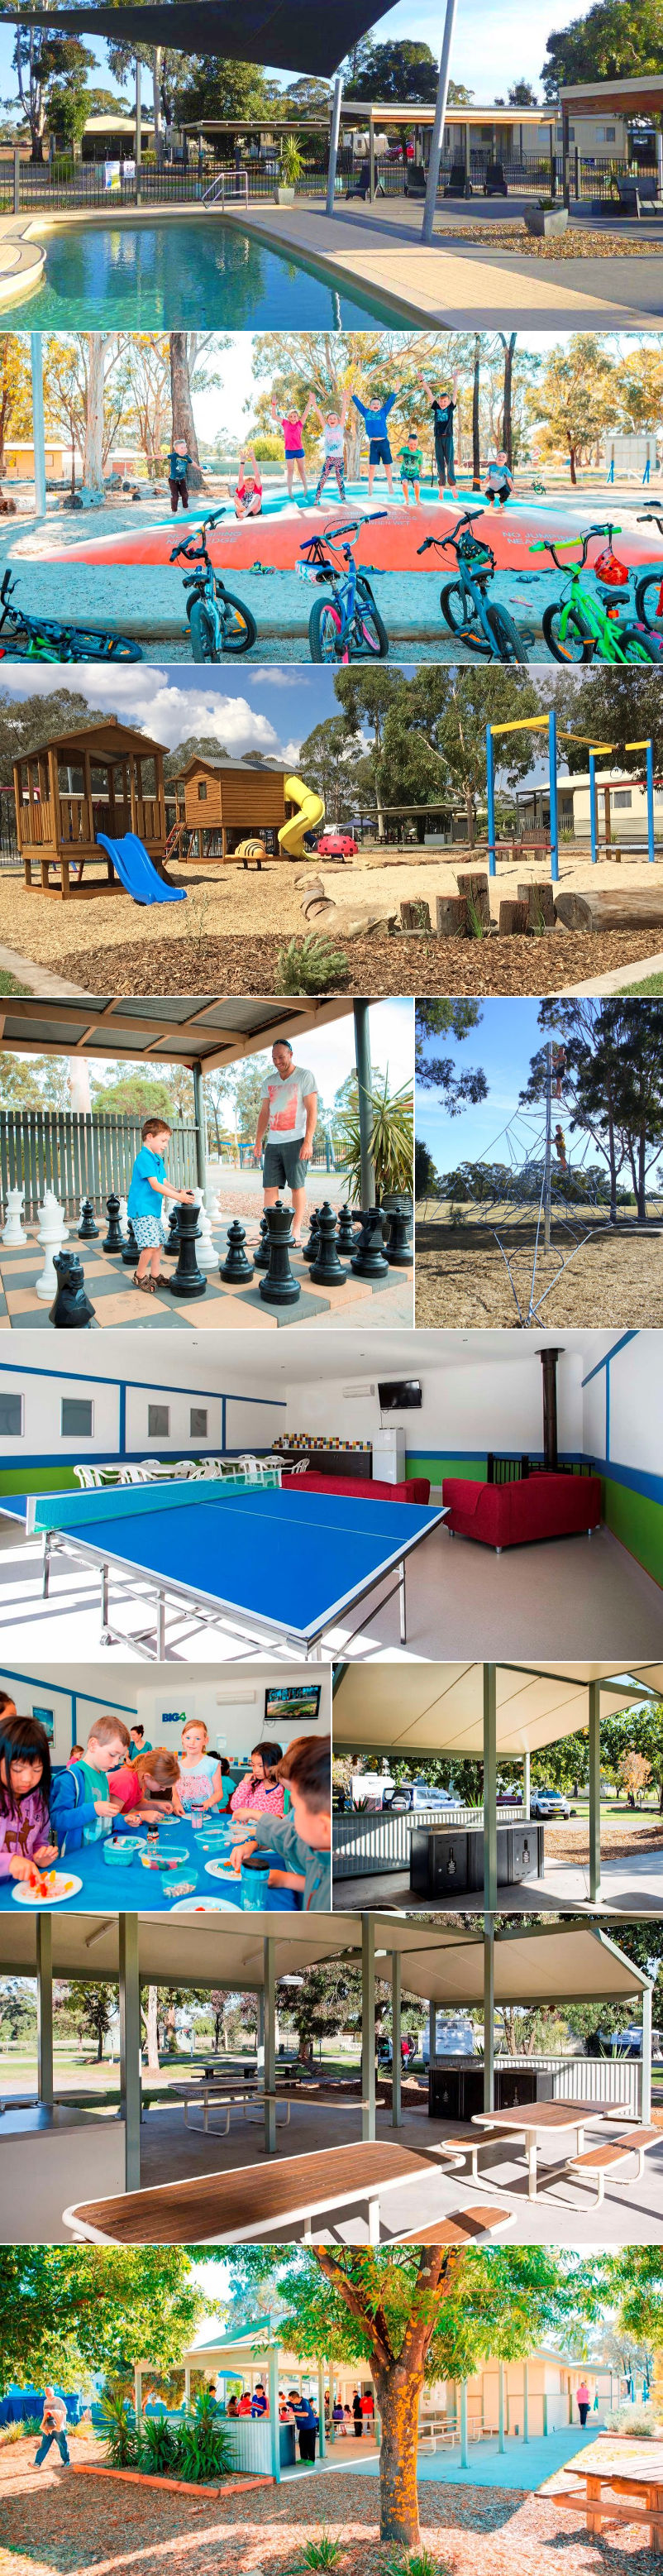 BIG4 Bendigo Marong Holiday Park - Grounds and facilities